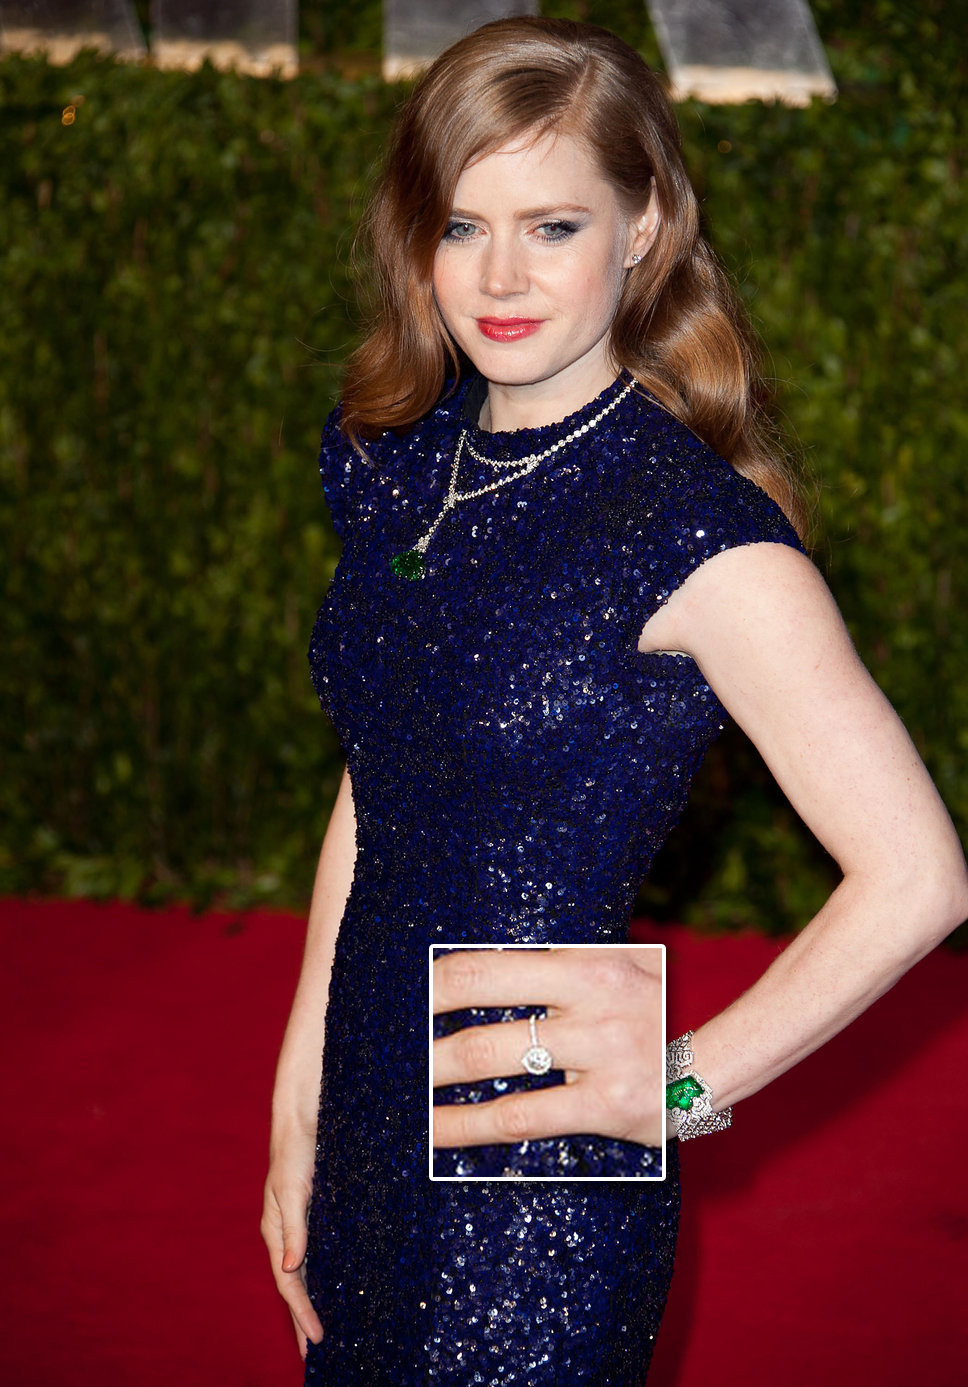 http://www.posh24.com/photo/1027493/amy_adams_blue_sequin_dress_emerald_necklace_and_ring_red_hair